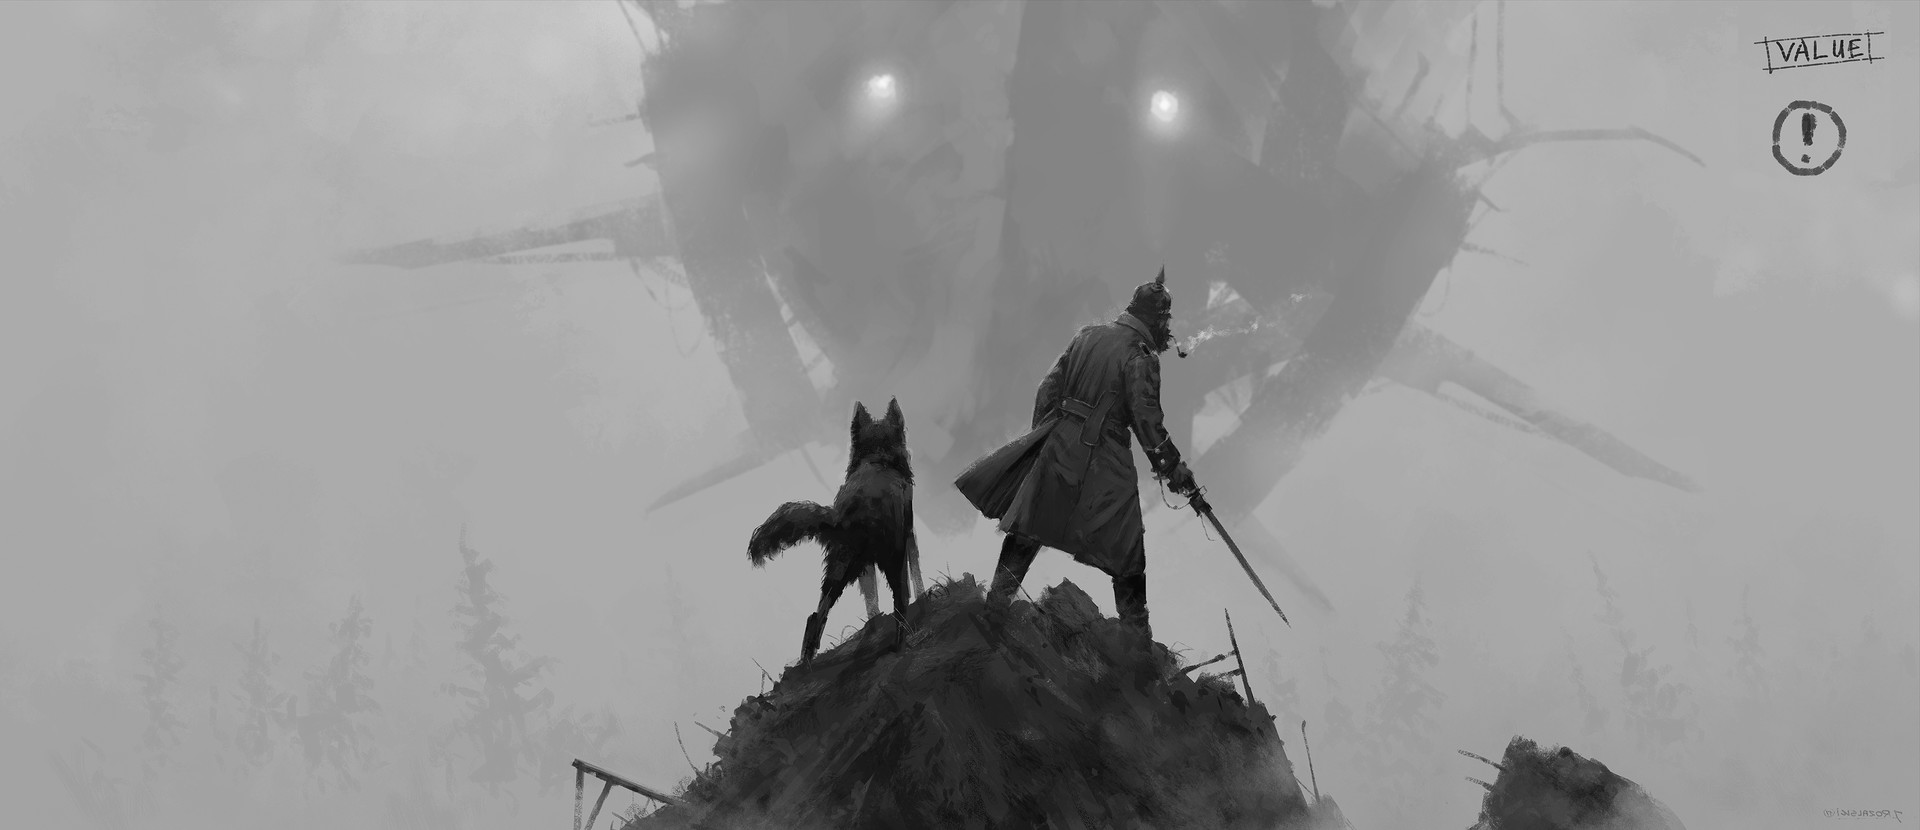 Jakub rozalski walk with the dog process2